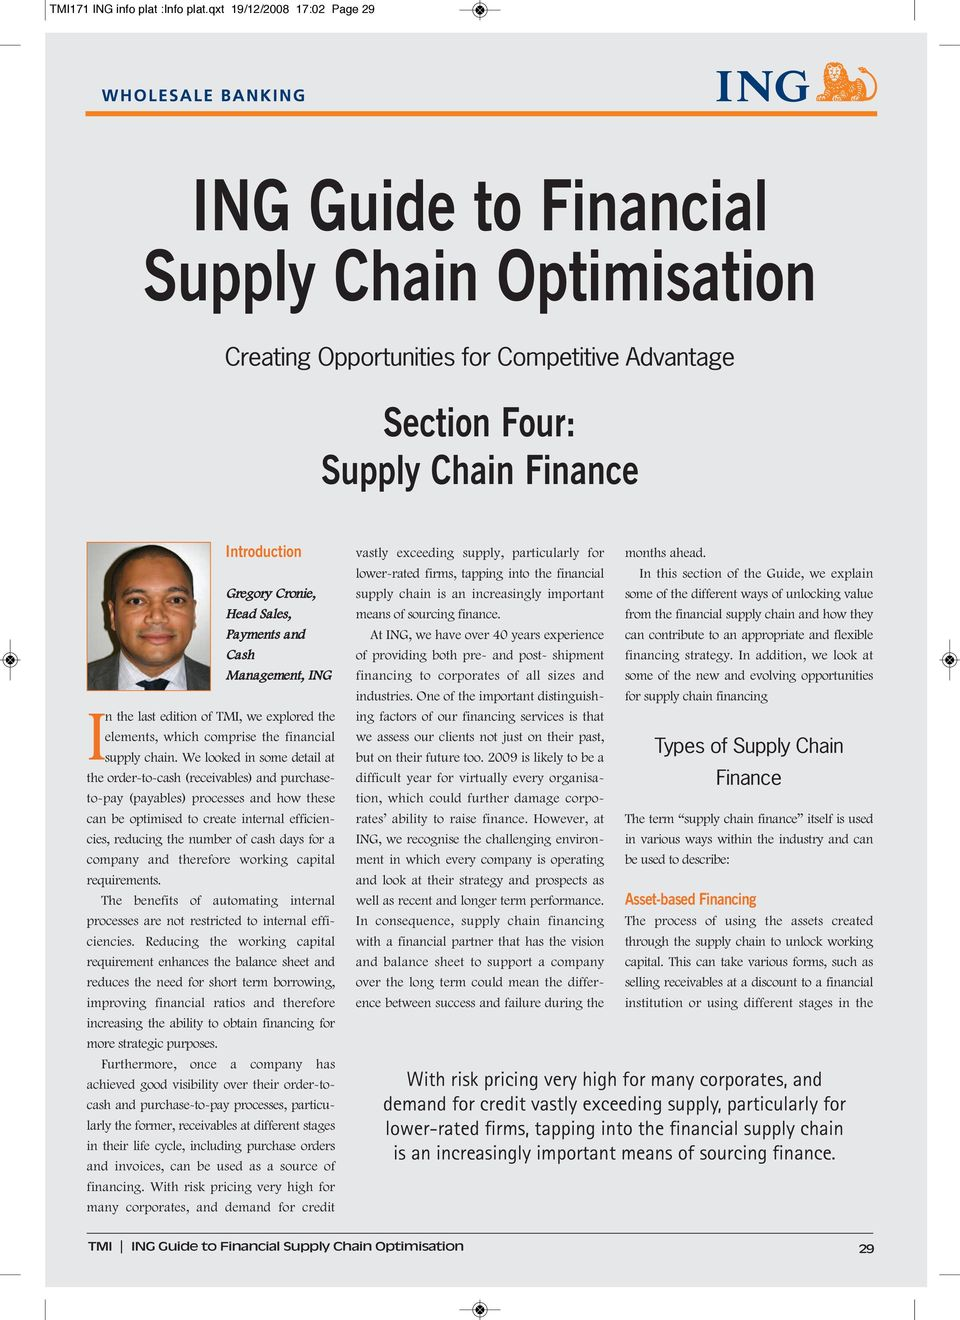 Payments and Cash Management, ING In the ast edition of TMI, we expored the eements, which comprise the financia suppy chain.